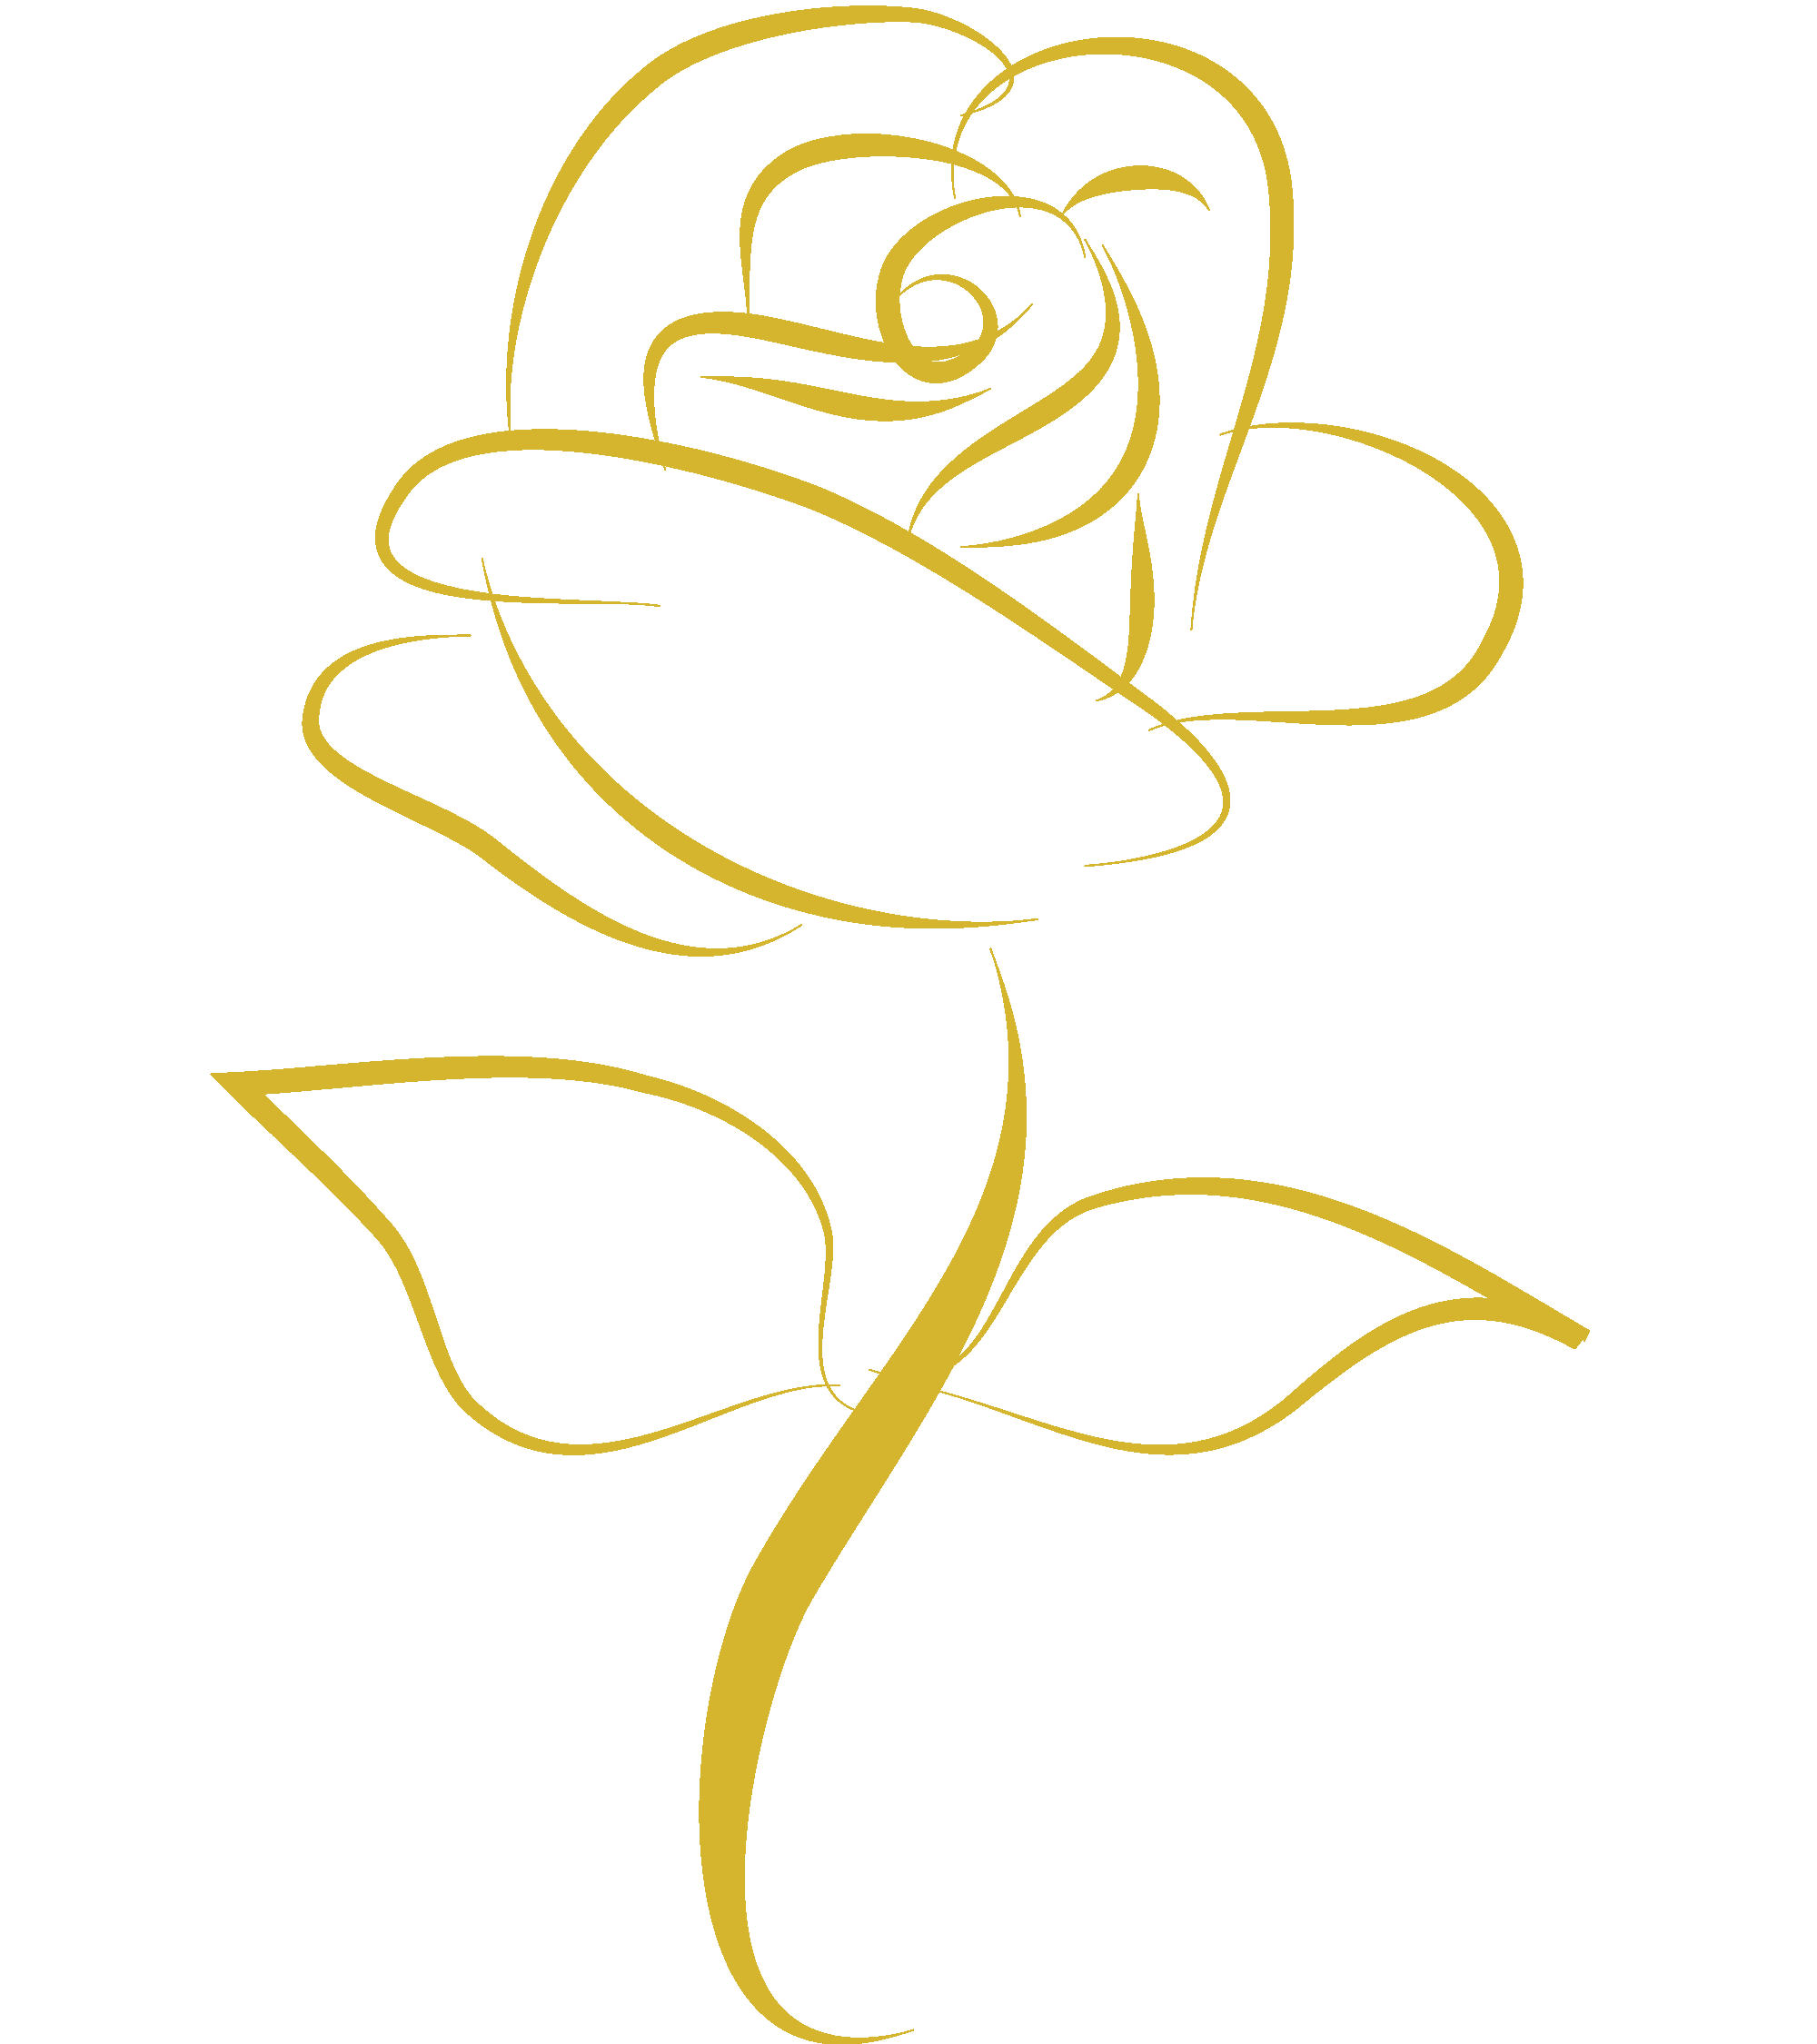 Clipart Of A Black And White Rose Flower 9.